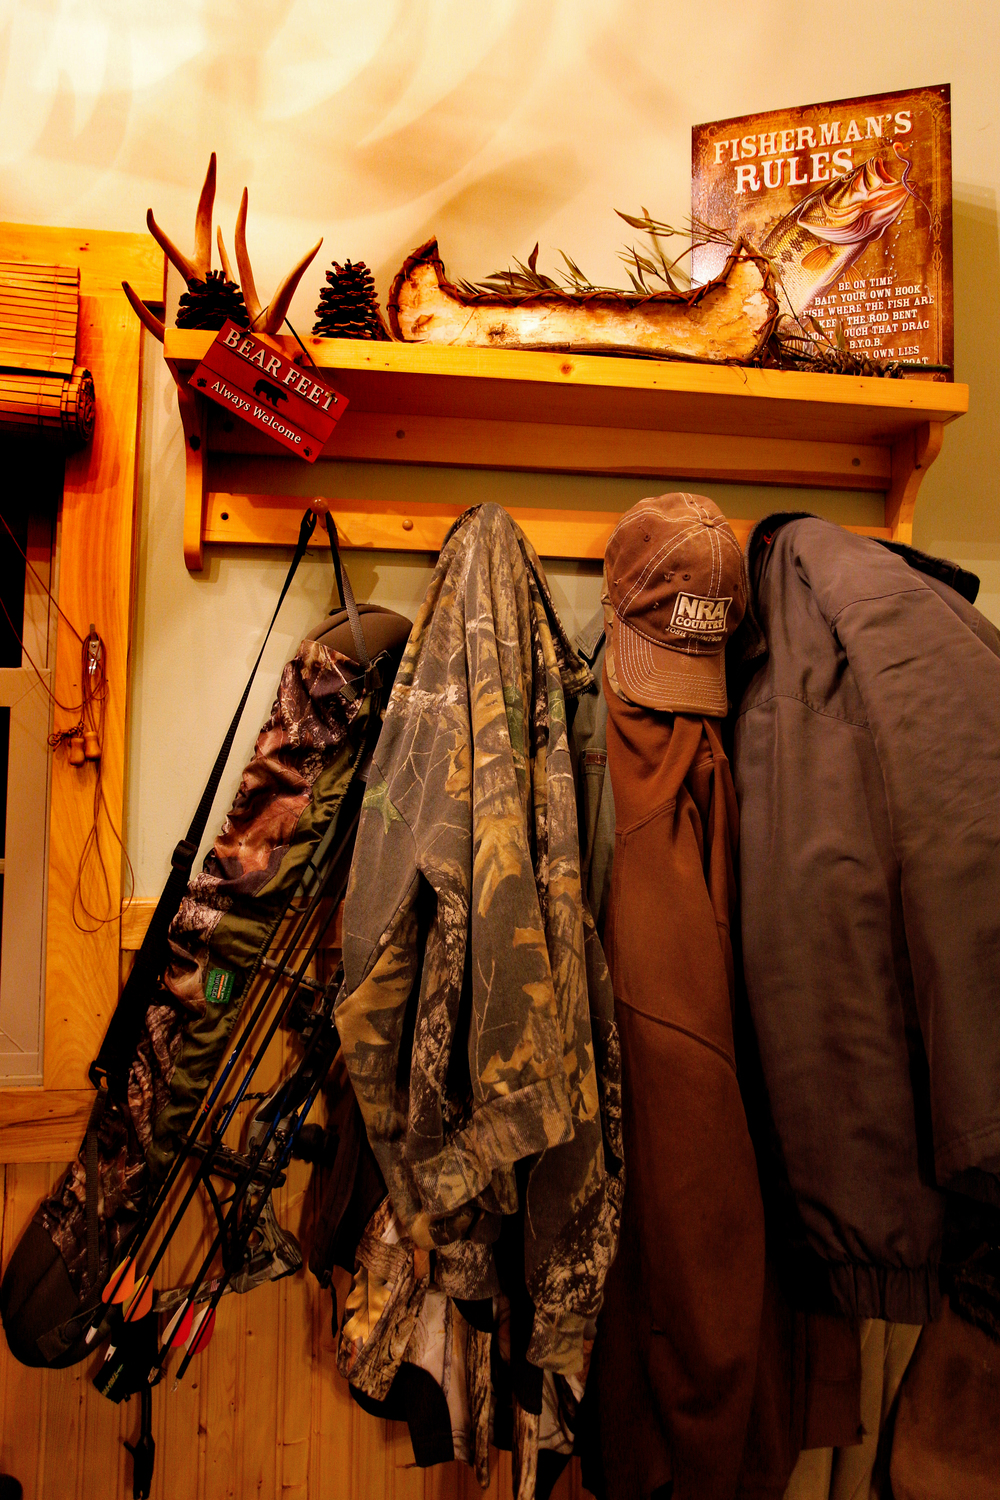 Coats, hats and a crossbow hang on the coat rack of Billy Kittle's home in Glouster, Ohio.